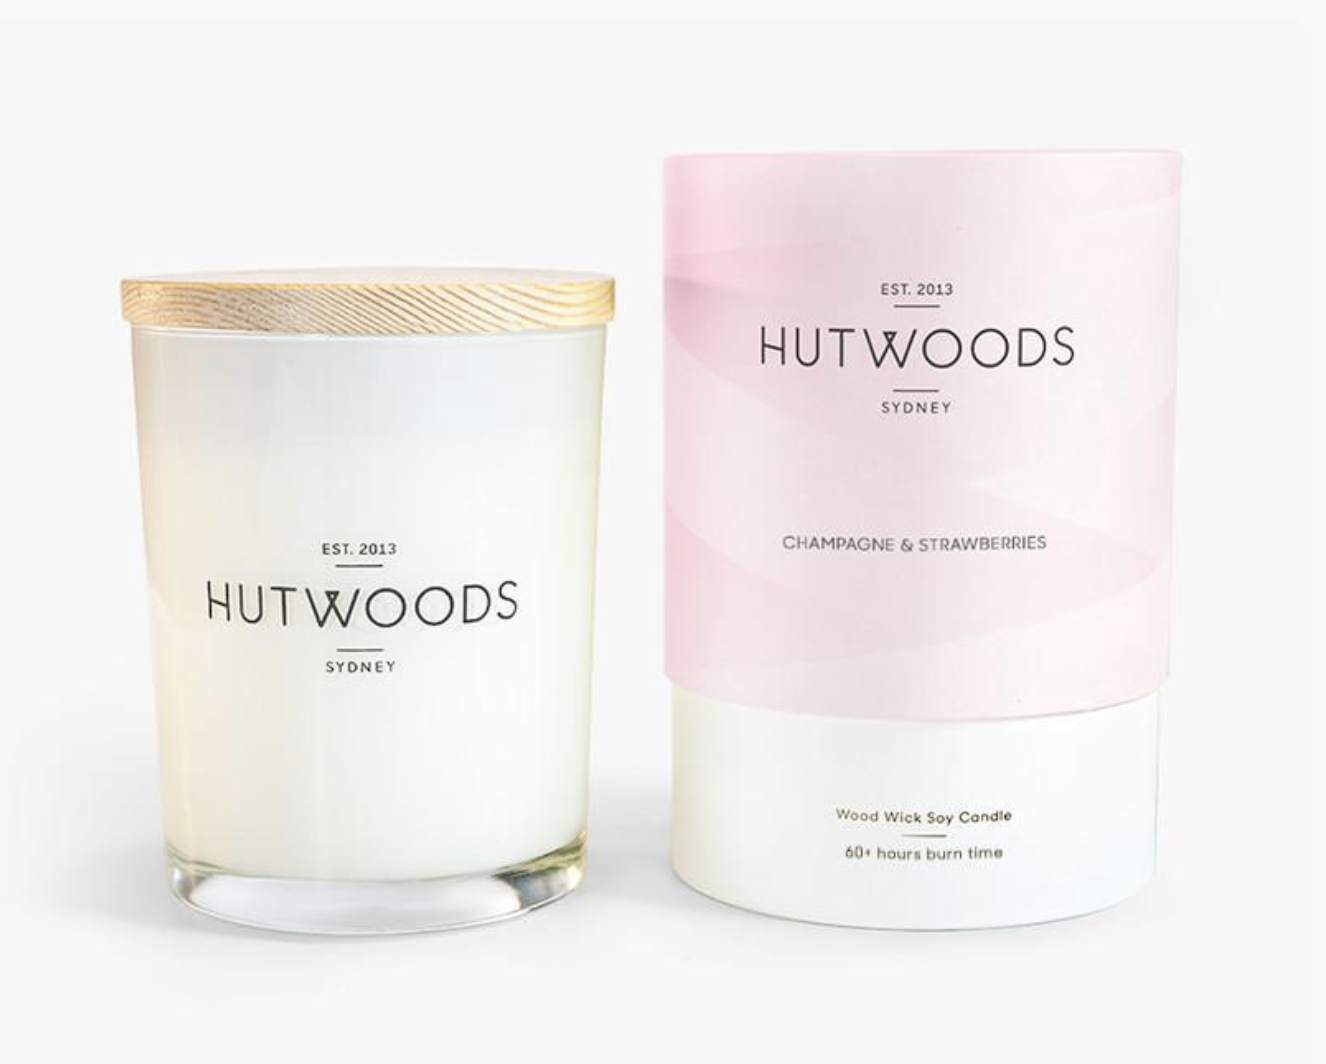 CHAMPAGNE & STRAWBERRIES CANDLE 250g